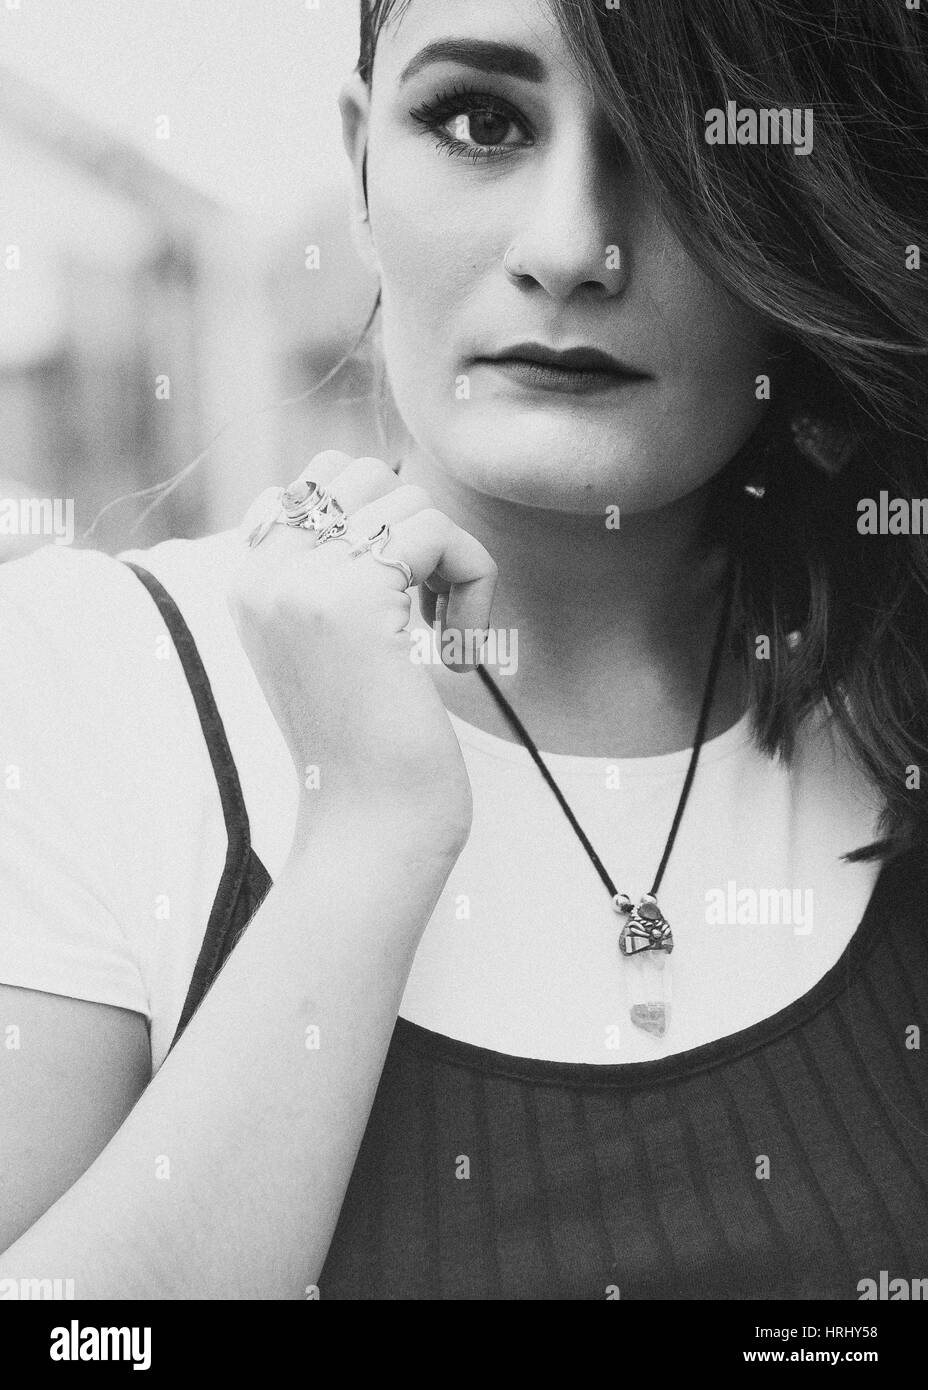 Black and white portrait of a young woman Stock Photo